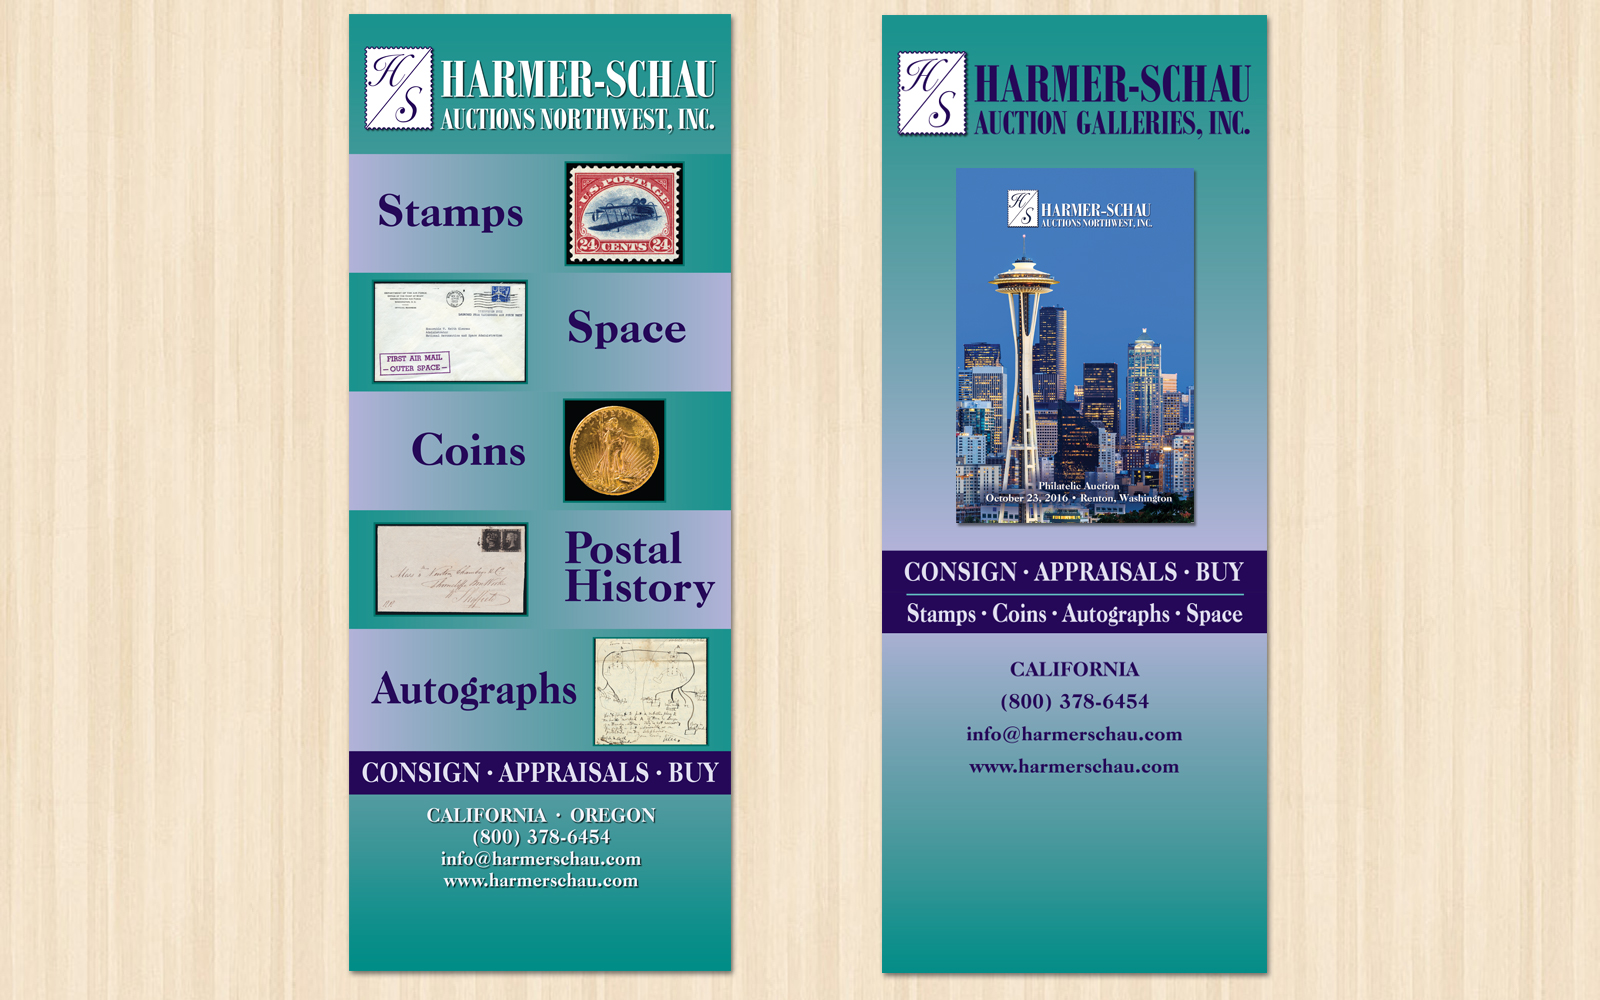 Harmer Schau Auction Galleries Trade Show Banners